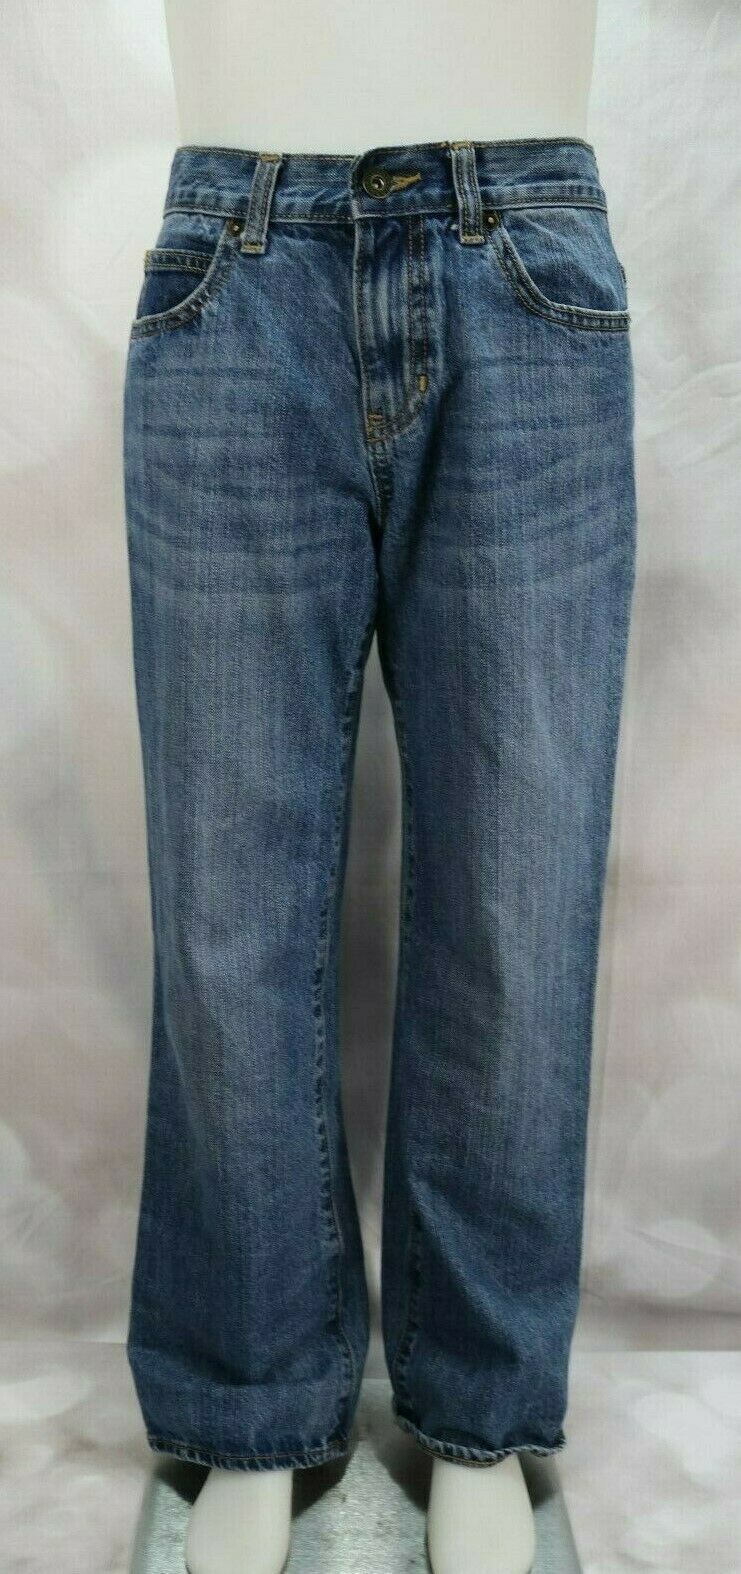 Boys Old Navy Boot Cut Jeans size 14 Regular